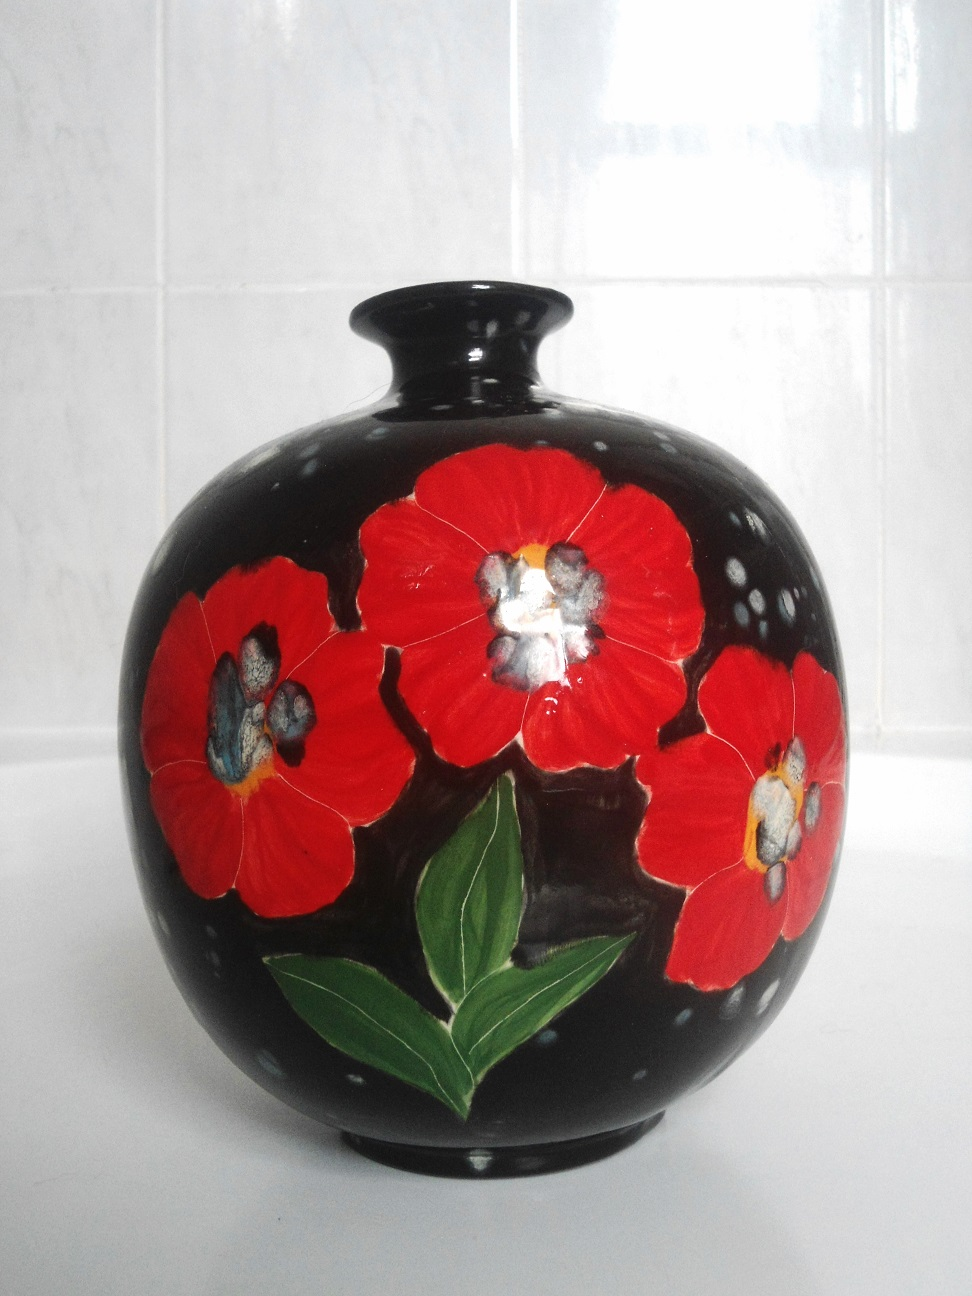 help with poppy vase signed smy 2005 Aviary13